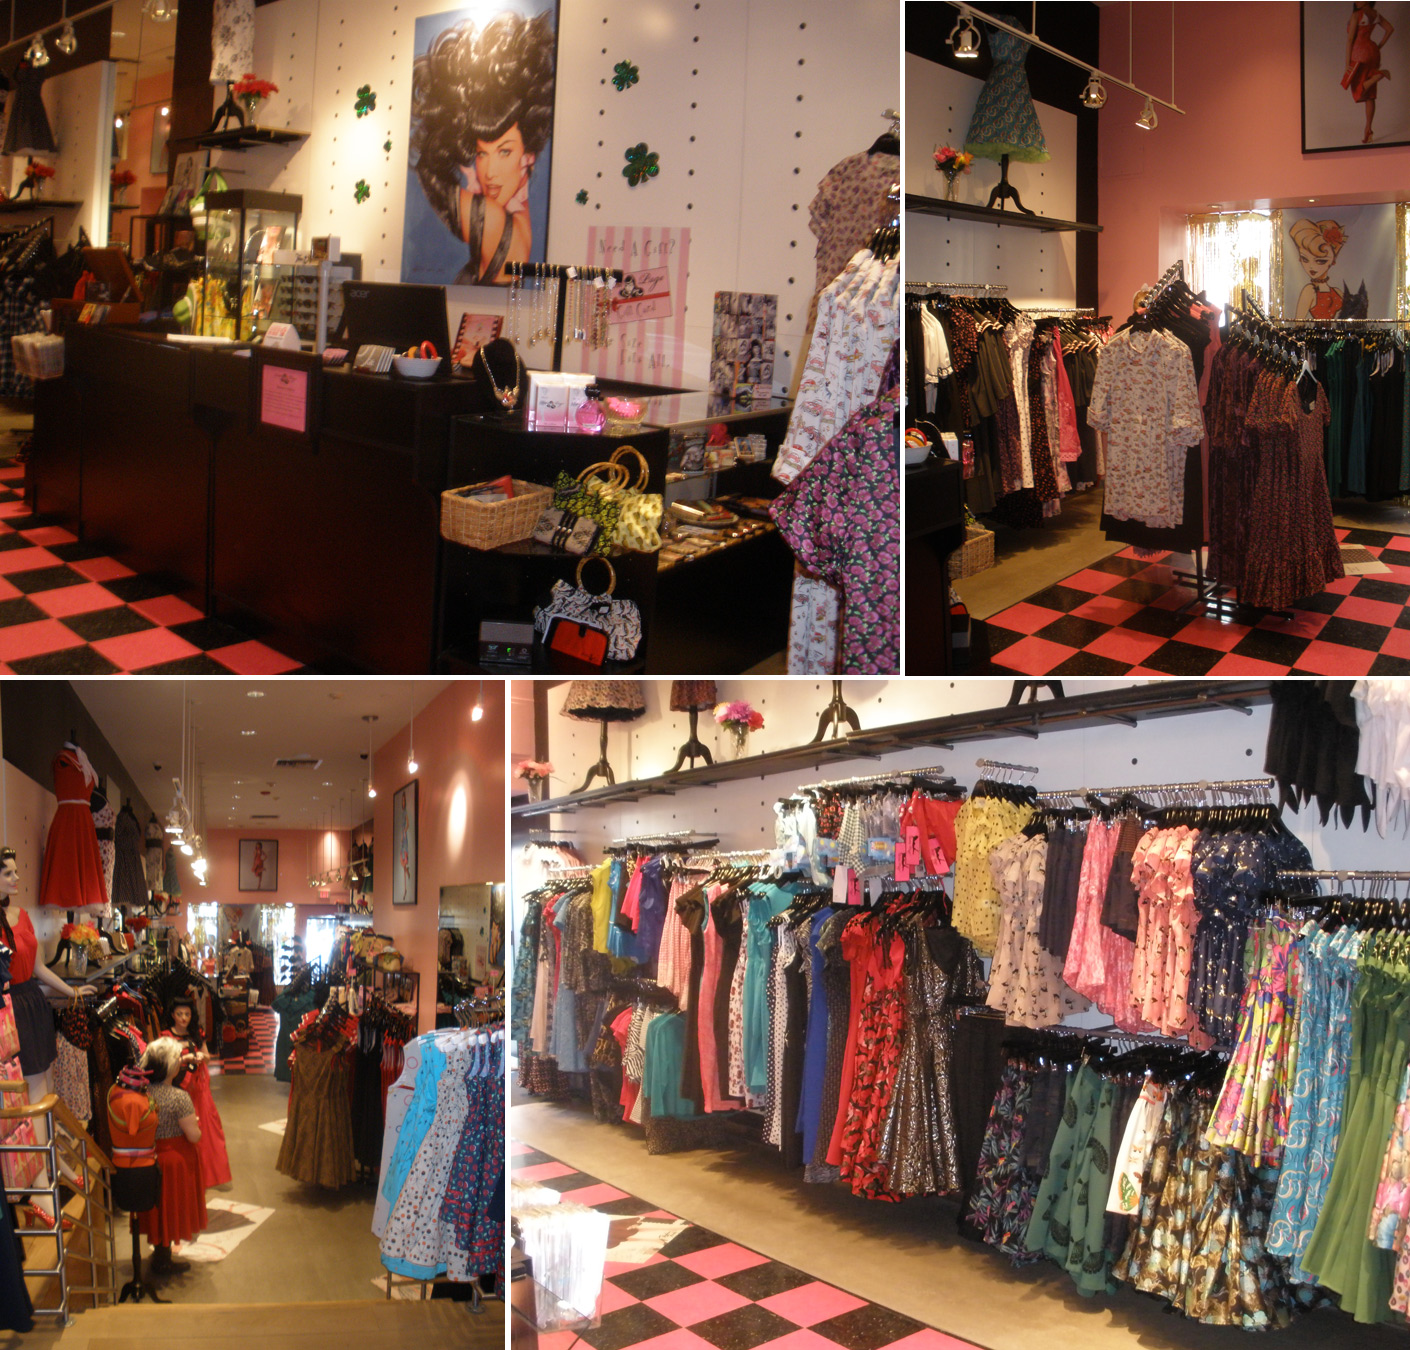 No Rest For Bridget: Online Women's Clothing Boutique where you can shop the latest trends in fashion for an affordable price. Shop dresses,tops, denim, shoes and more!